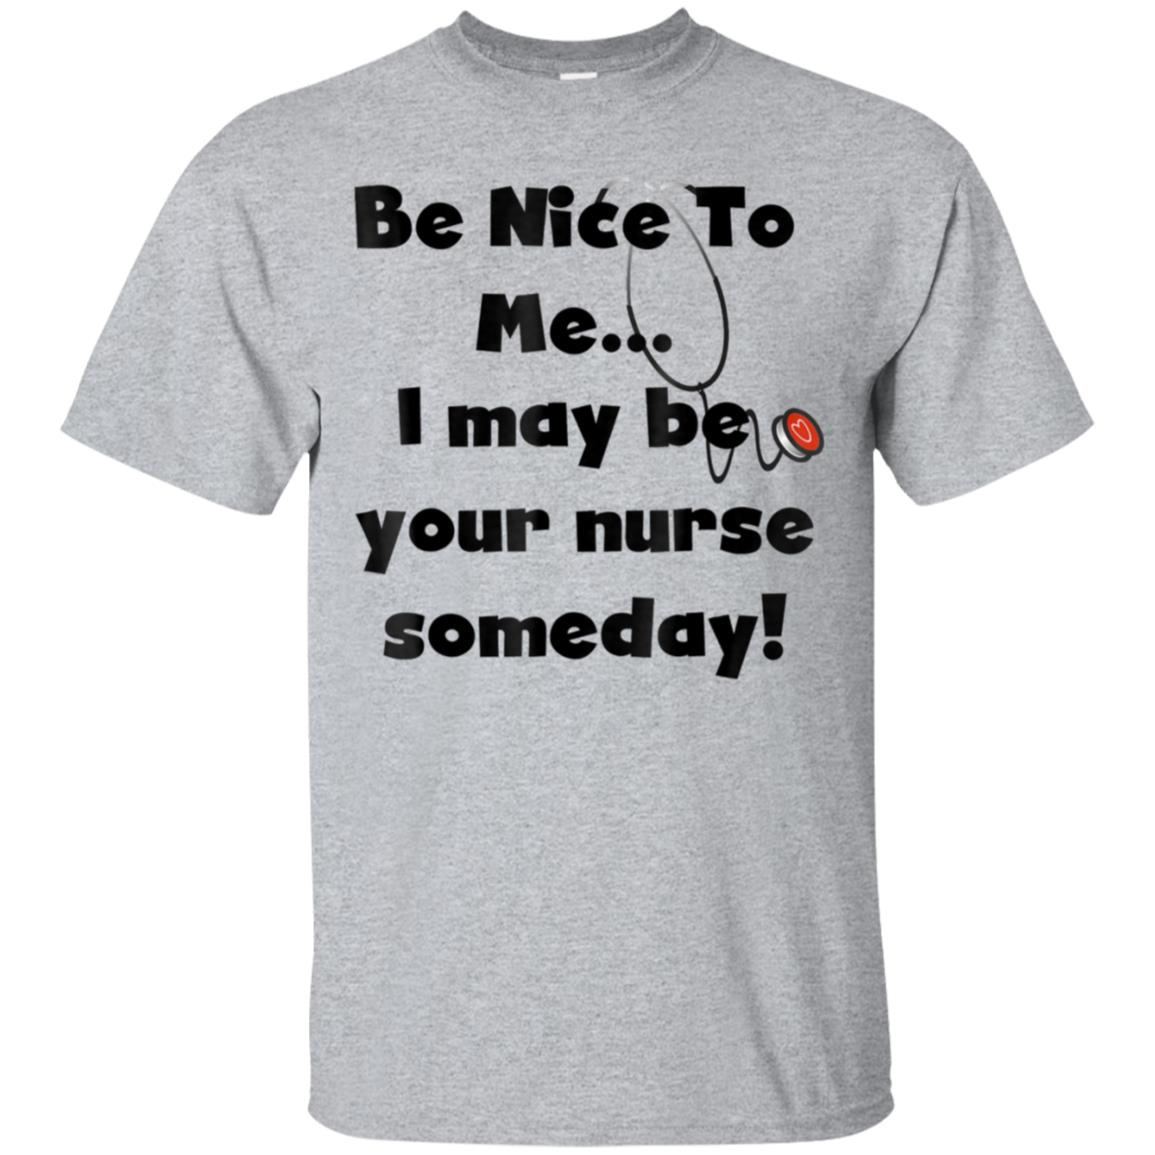 Be Nice to Me Funny Nurse Saying T-shirt 99promocode